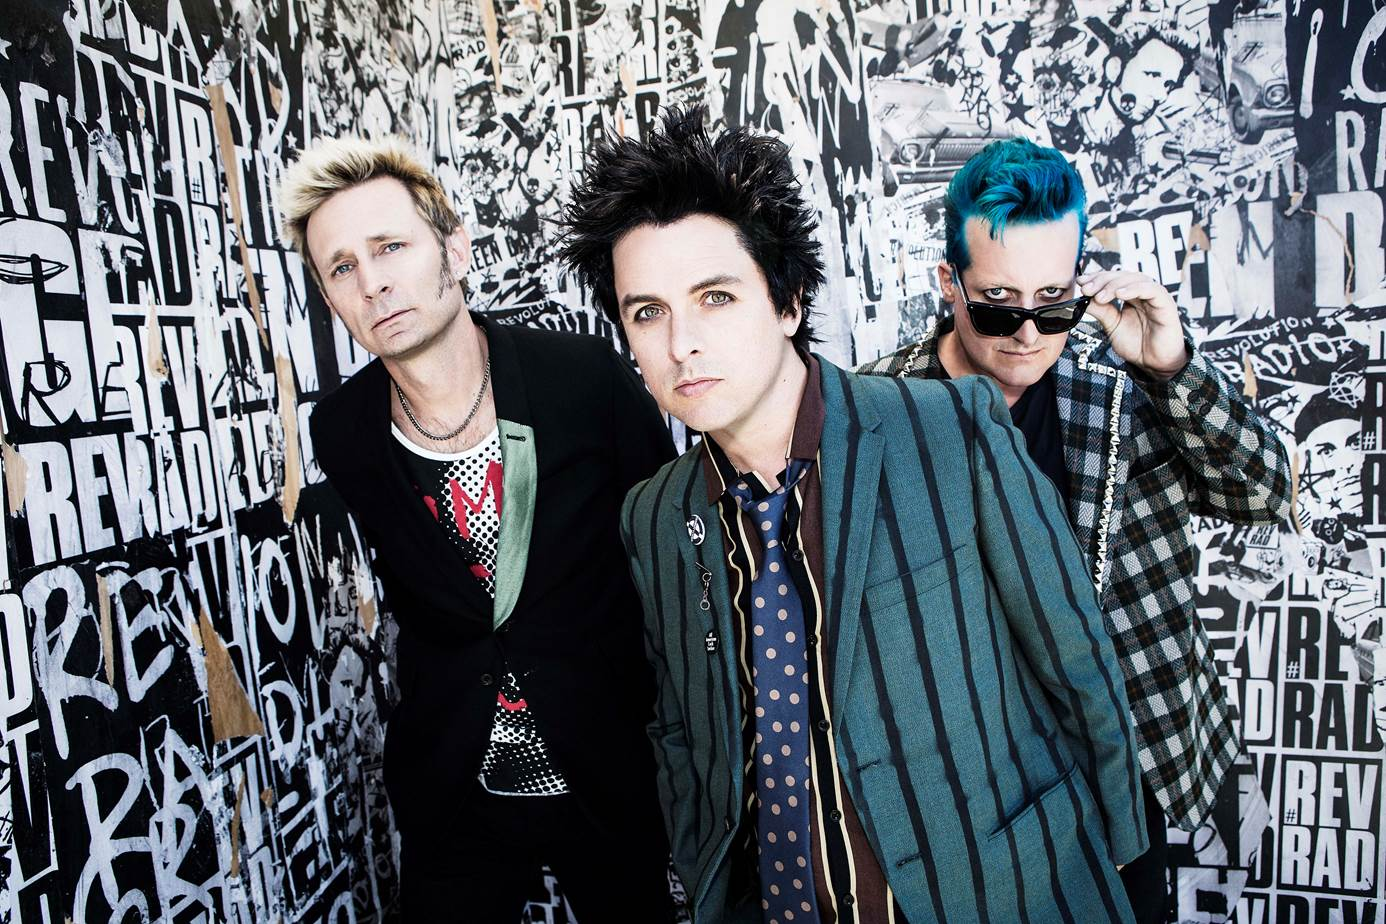 Green Day return to Scotland after cancelling show three years ago